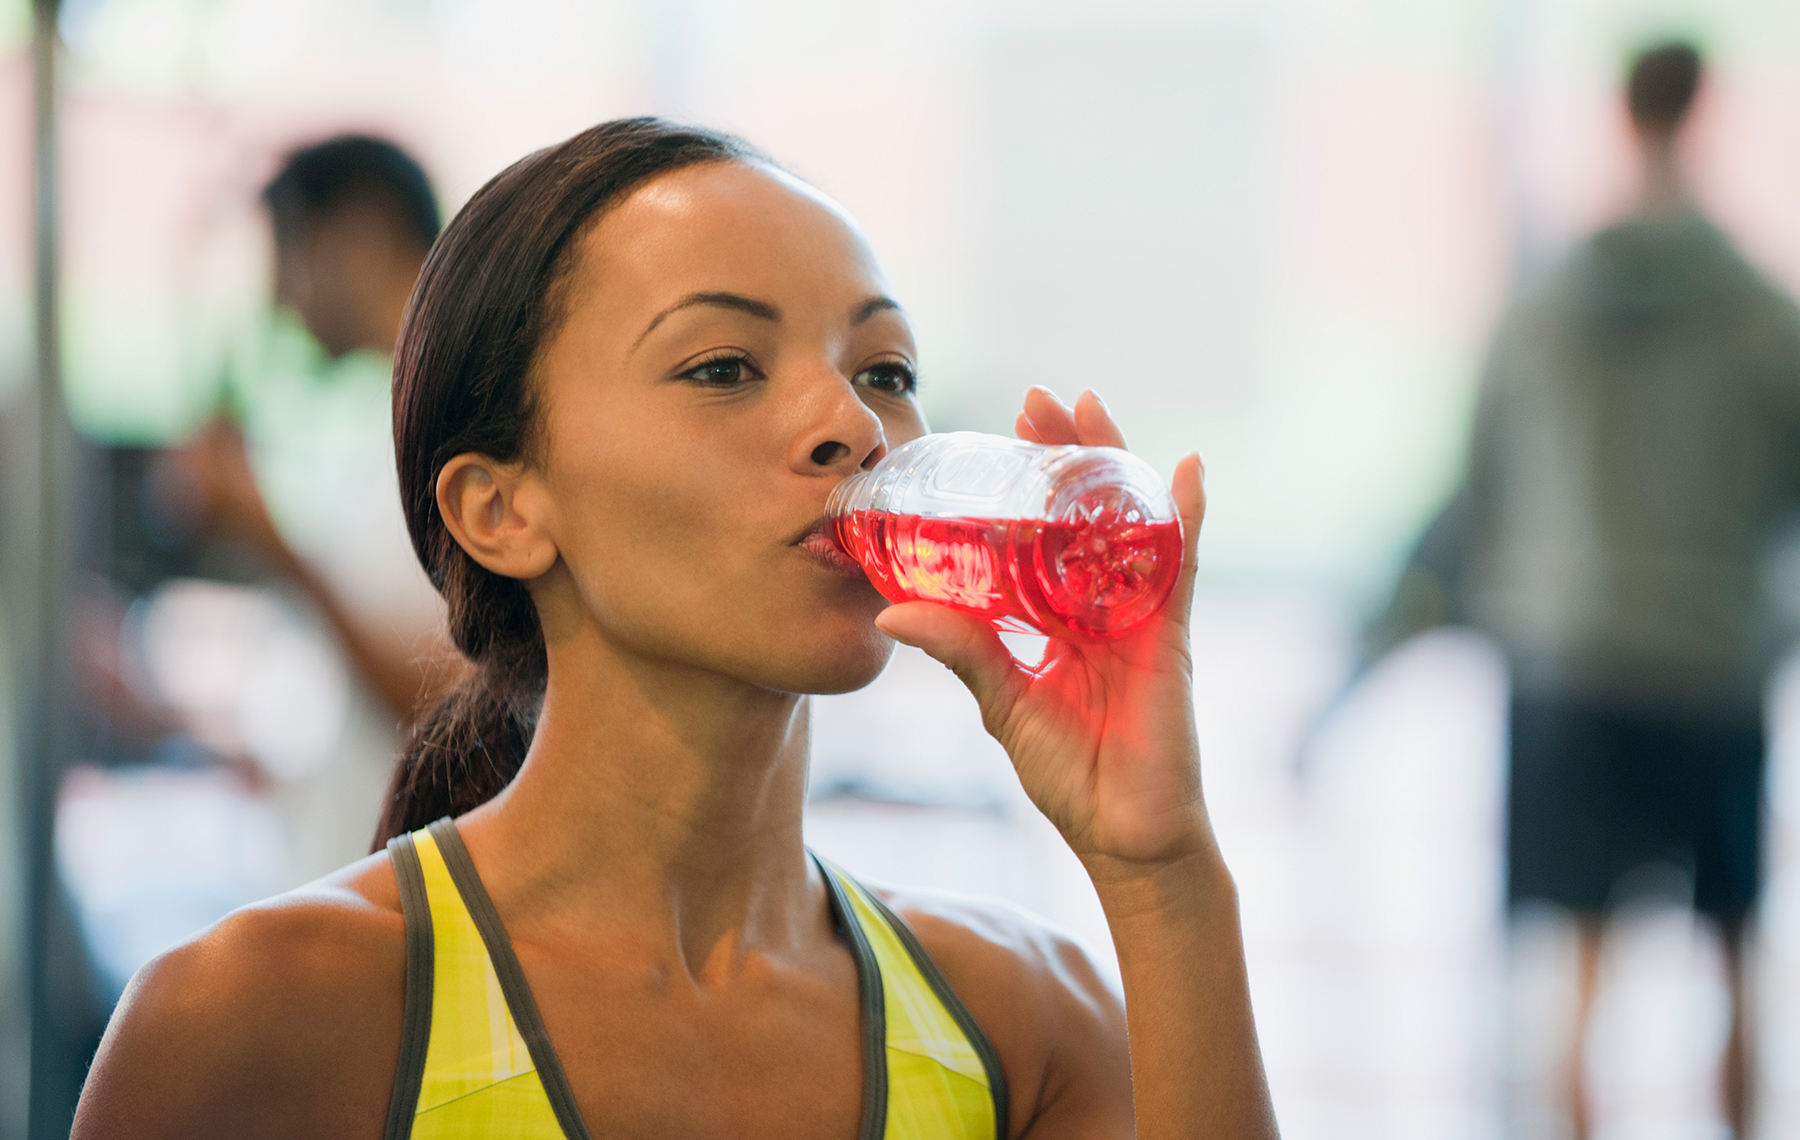 Sport woman drink a red sport drink